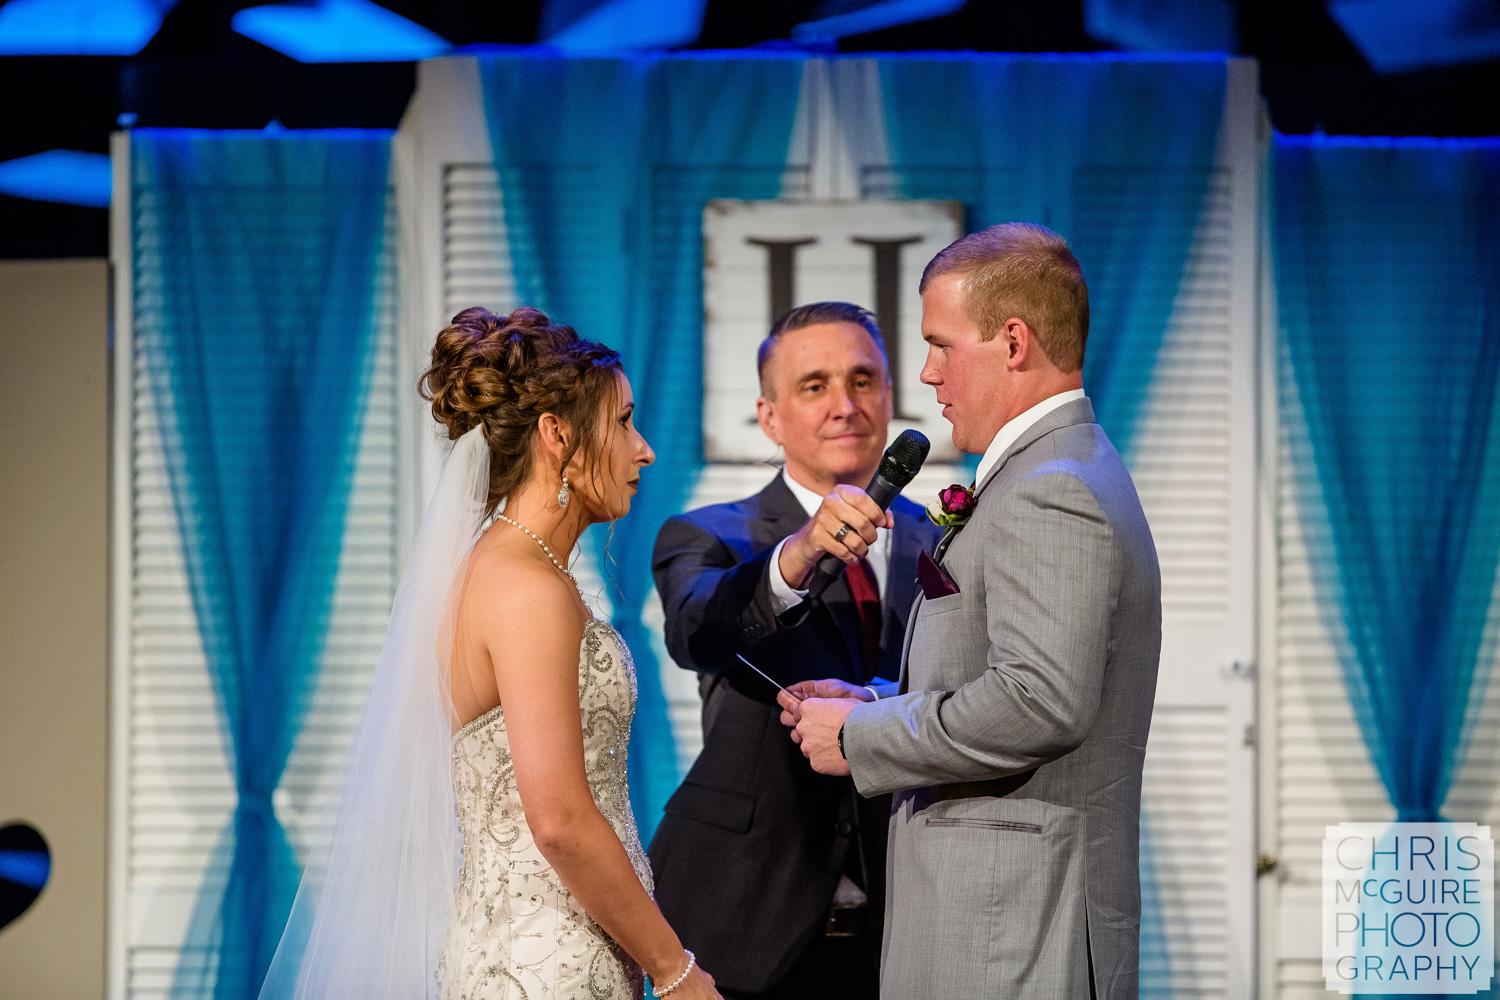 exchange of vows at Harvest Bible Chapel Peoria IL Wedding